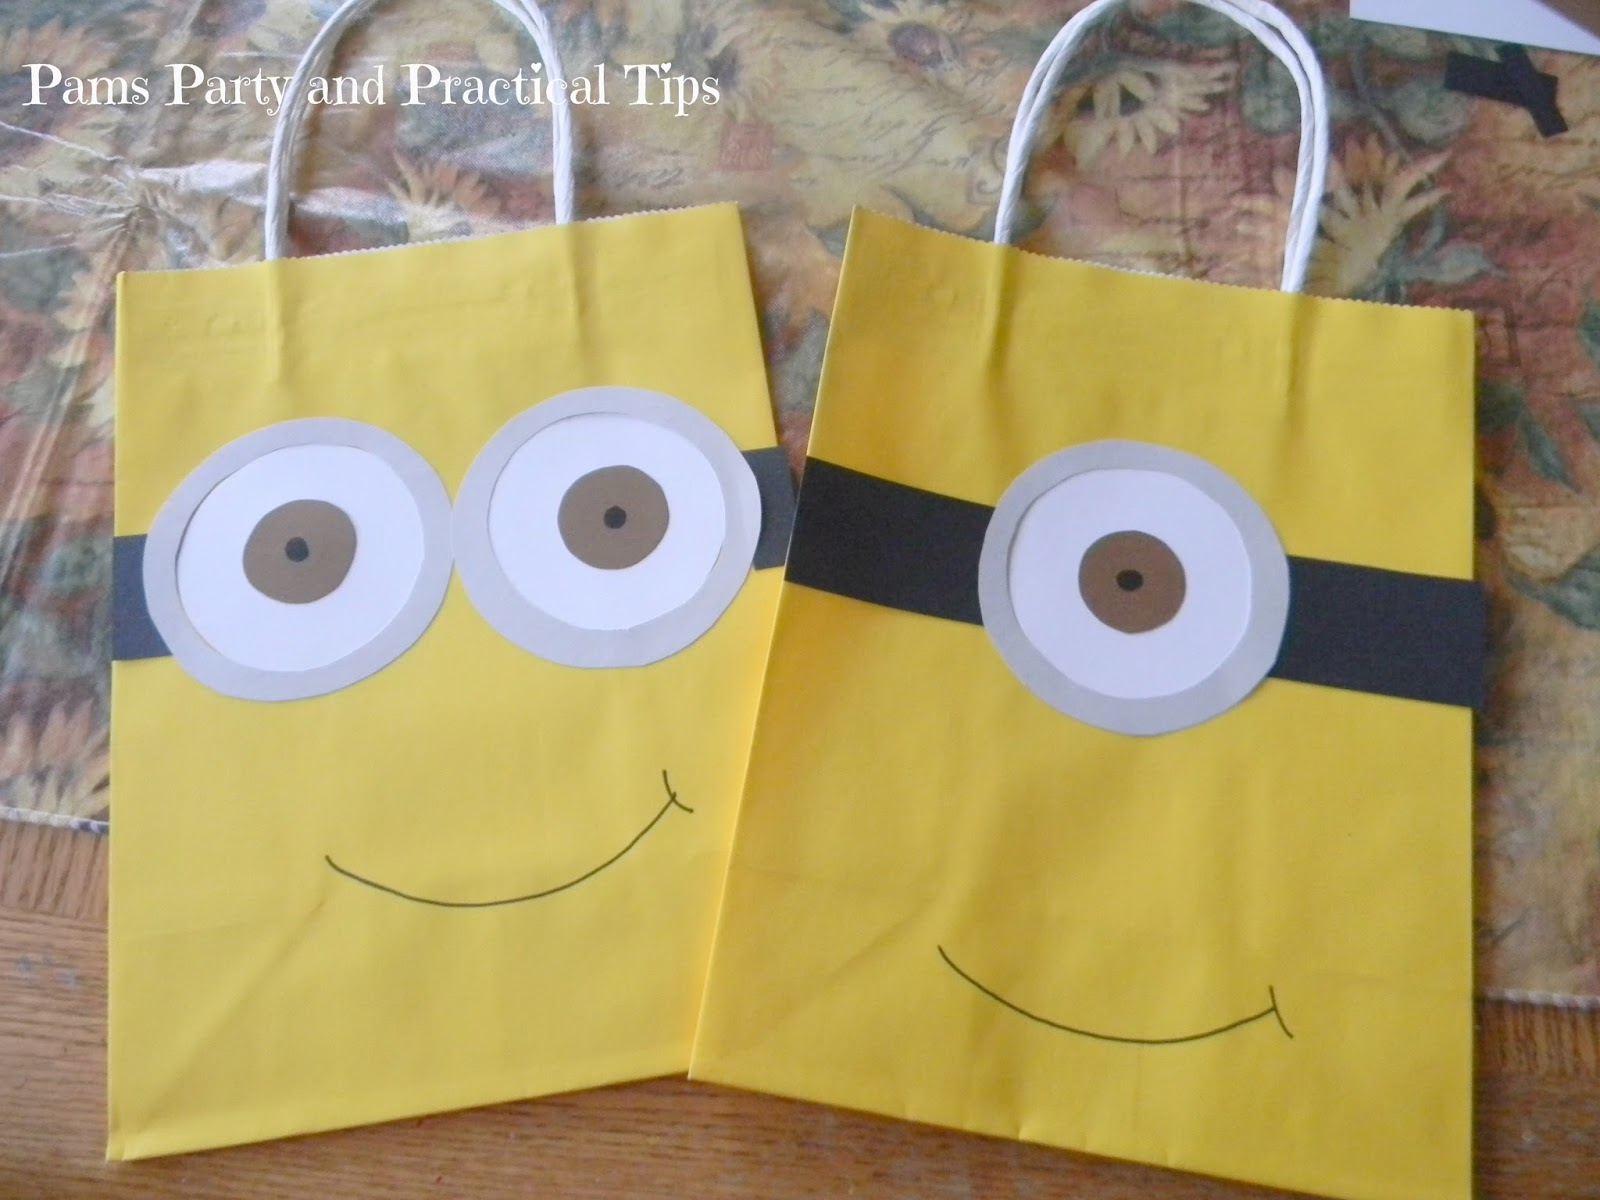 pams party practical tips despicable me party bags. Black Bedroom Furniture Sets. Home Design Ideas